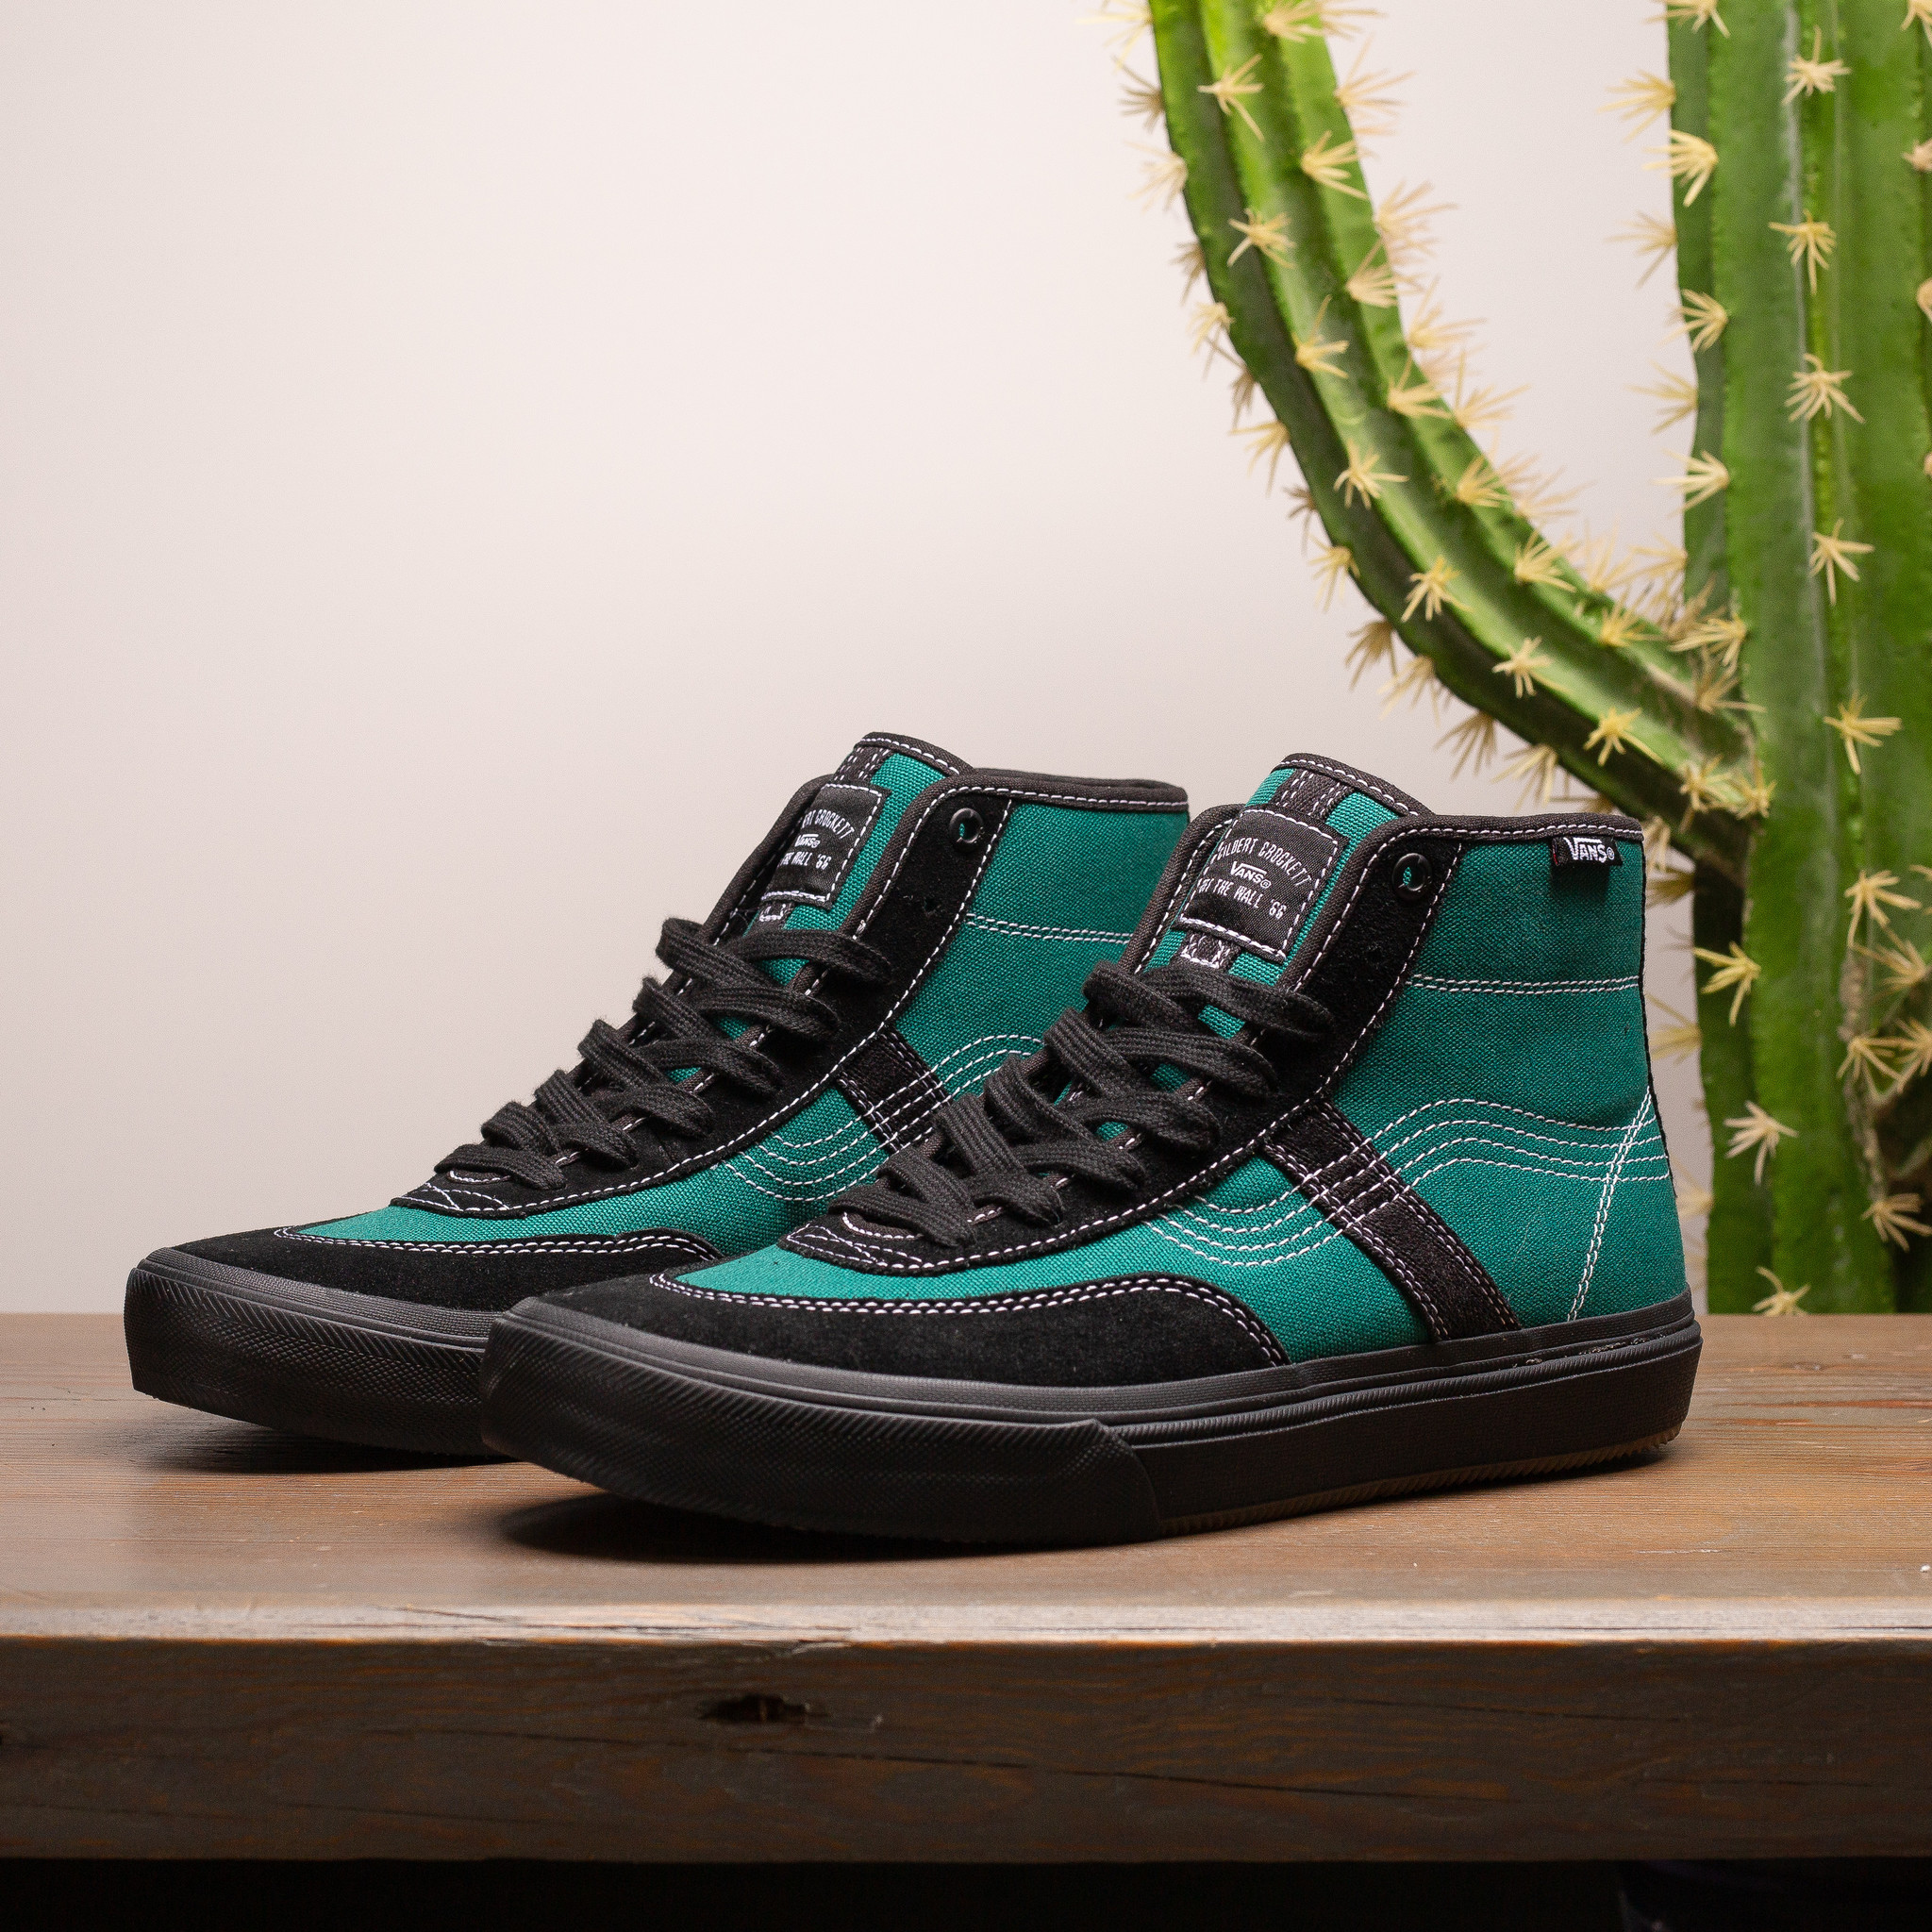 Vans Vans x Quasi Crockett High Pro Antique Teal/Black